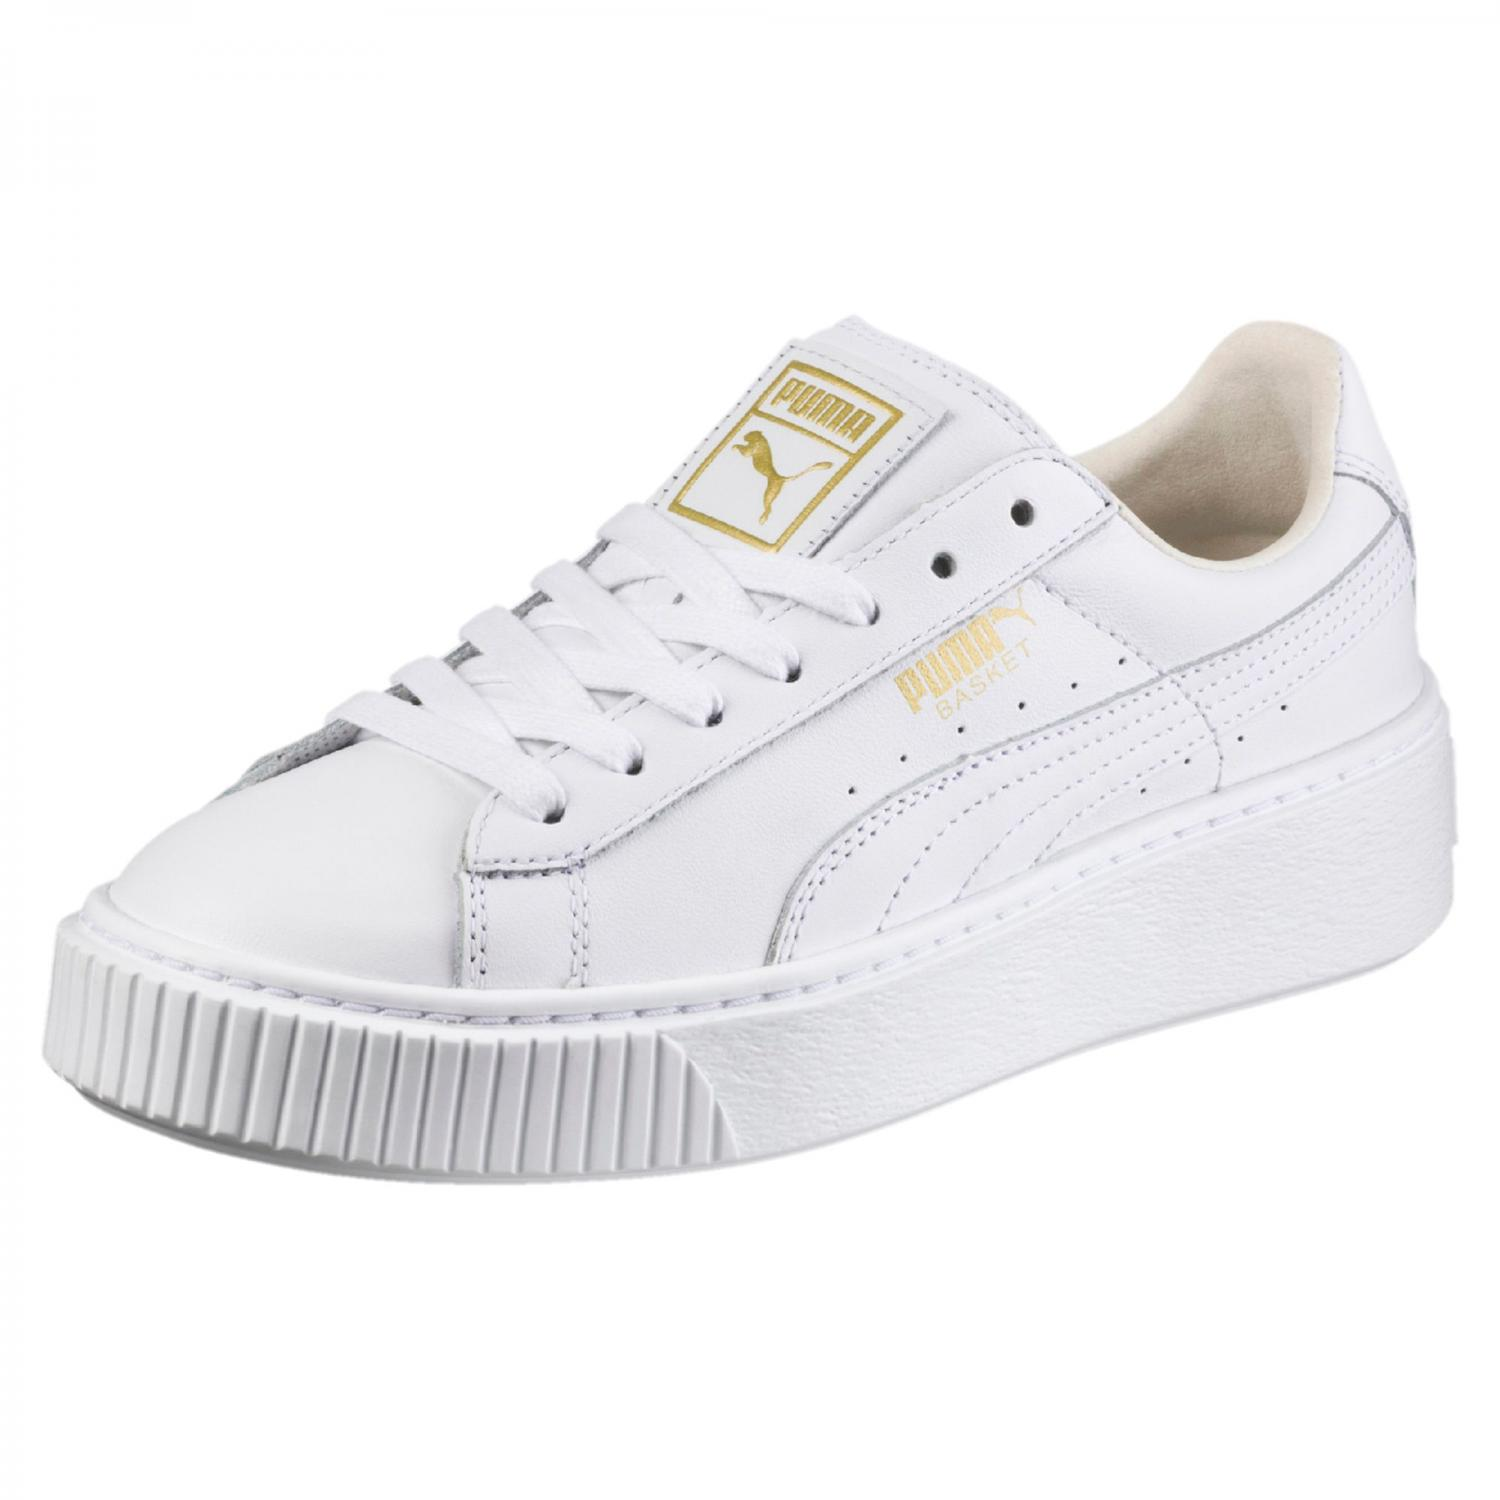 sneakers blanche femme puma